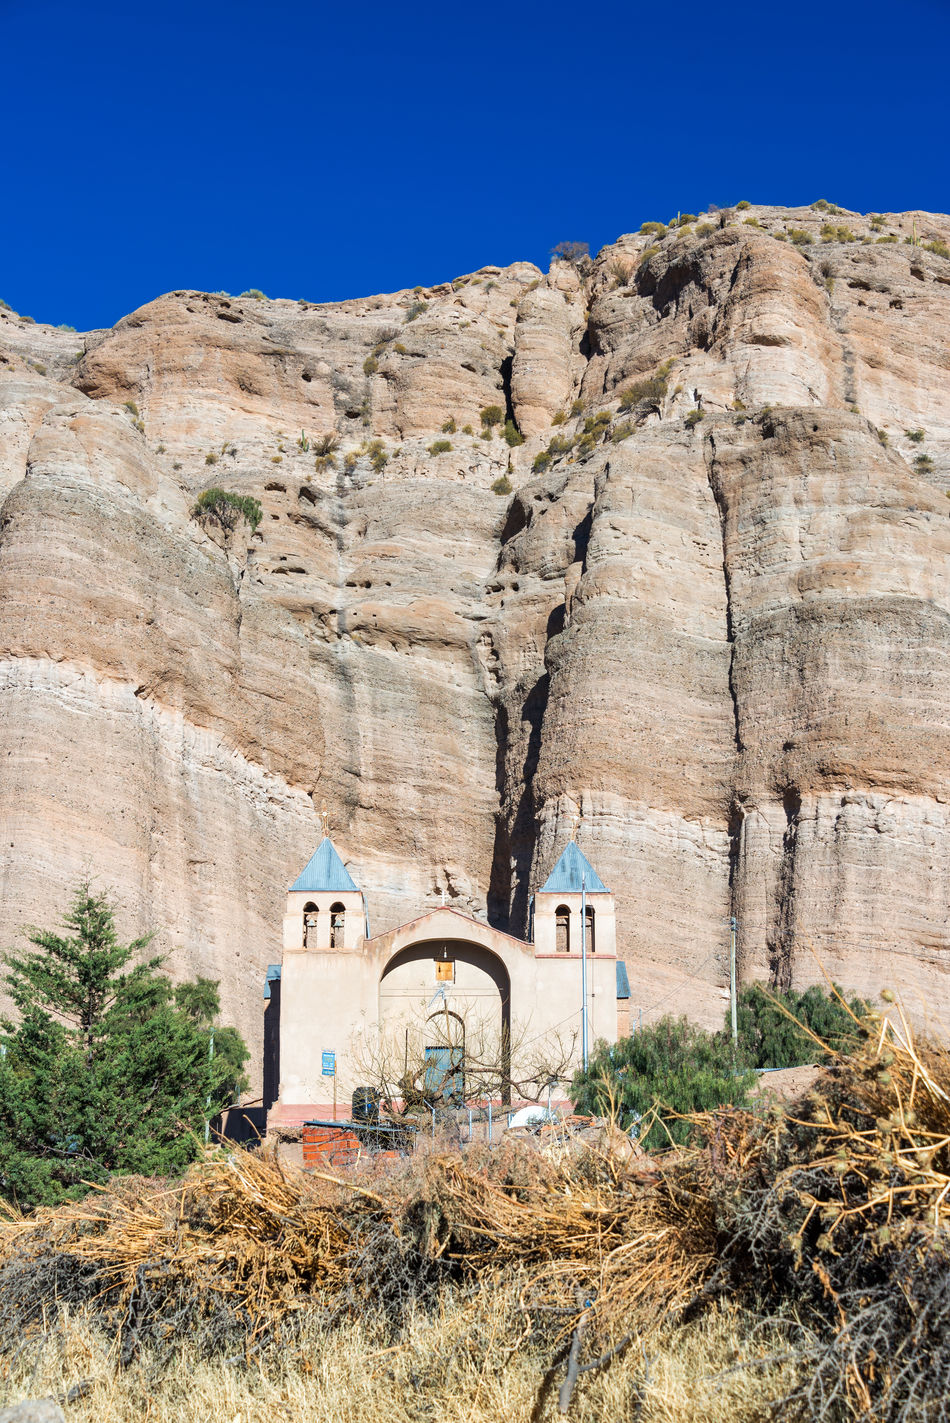 Church set against a dramatic cliff in the small town of Espicaya near Tupiza, Bolivia Amazing Andes Beauty Bolivia Cactus Canyon Church Color Countryside Desert Destination Formation Formations High Hills Landscape Mountain Nature Rock Rocks South America Traditional Travel TUPIZA Valley